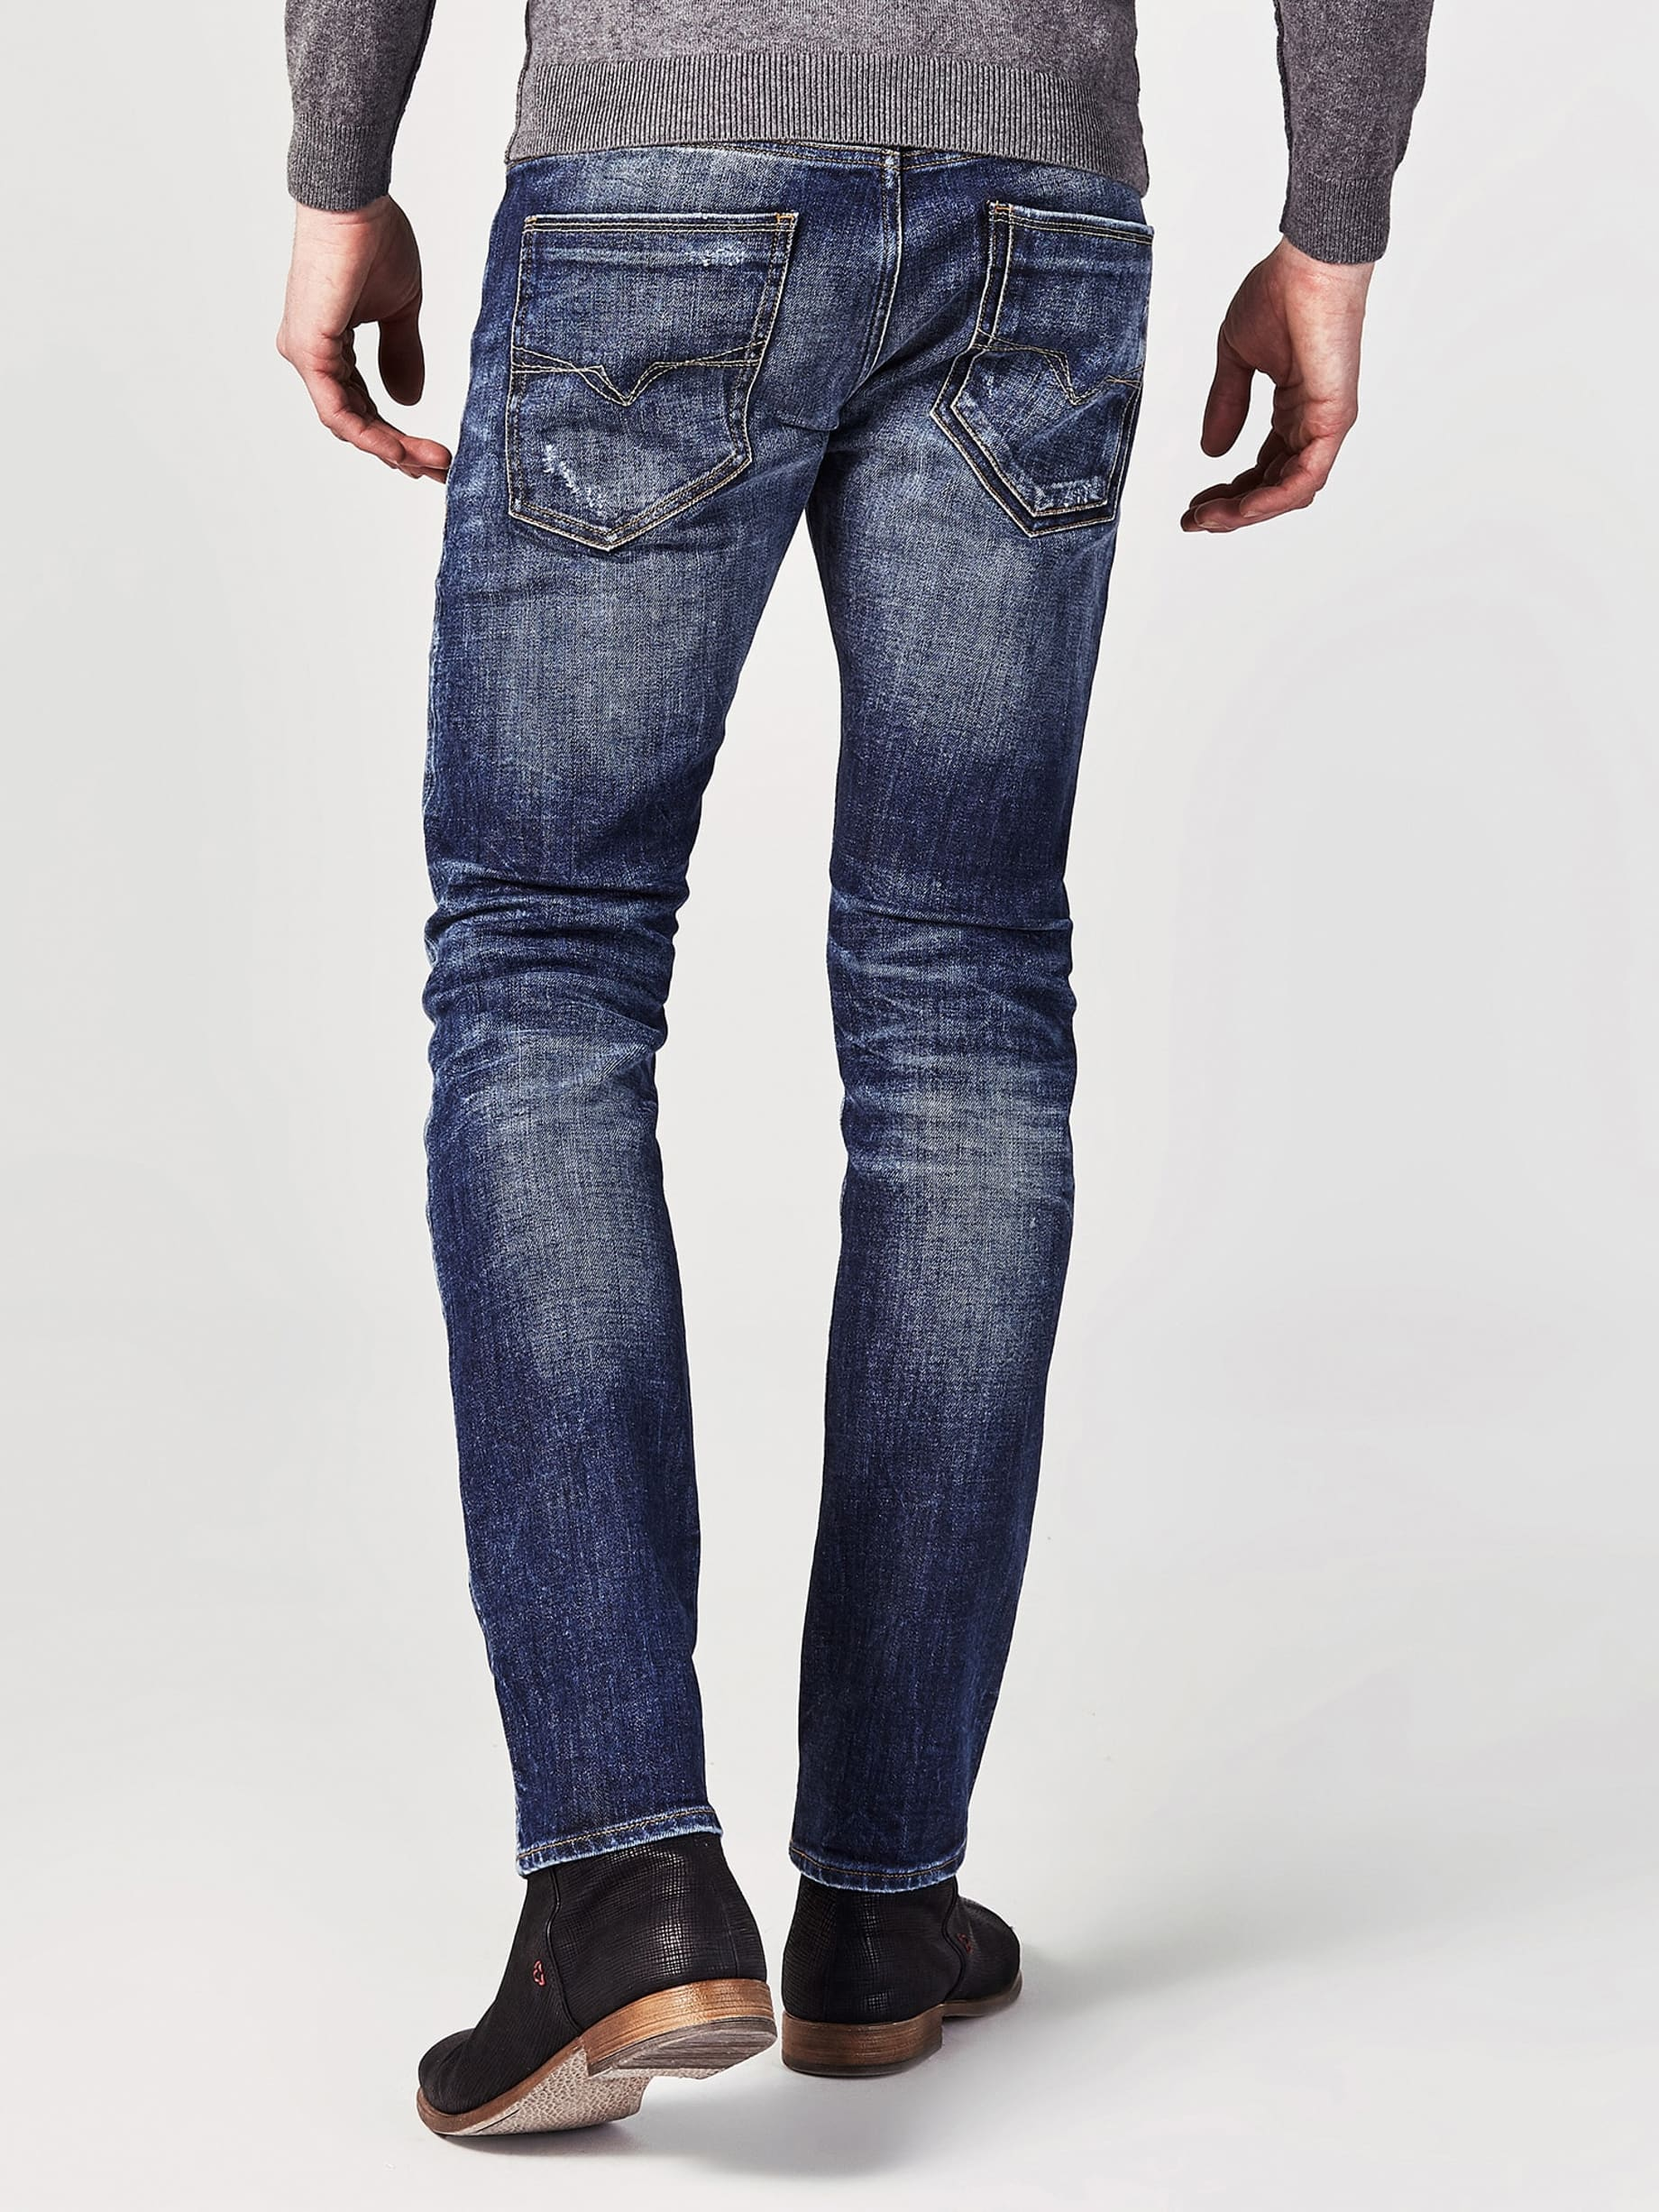 Jeans Skinny Abrasioni from Guess on 21 Buttons